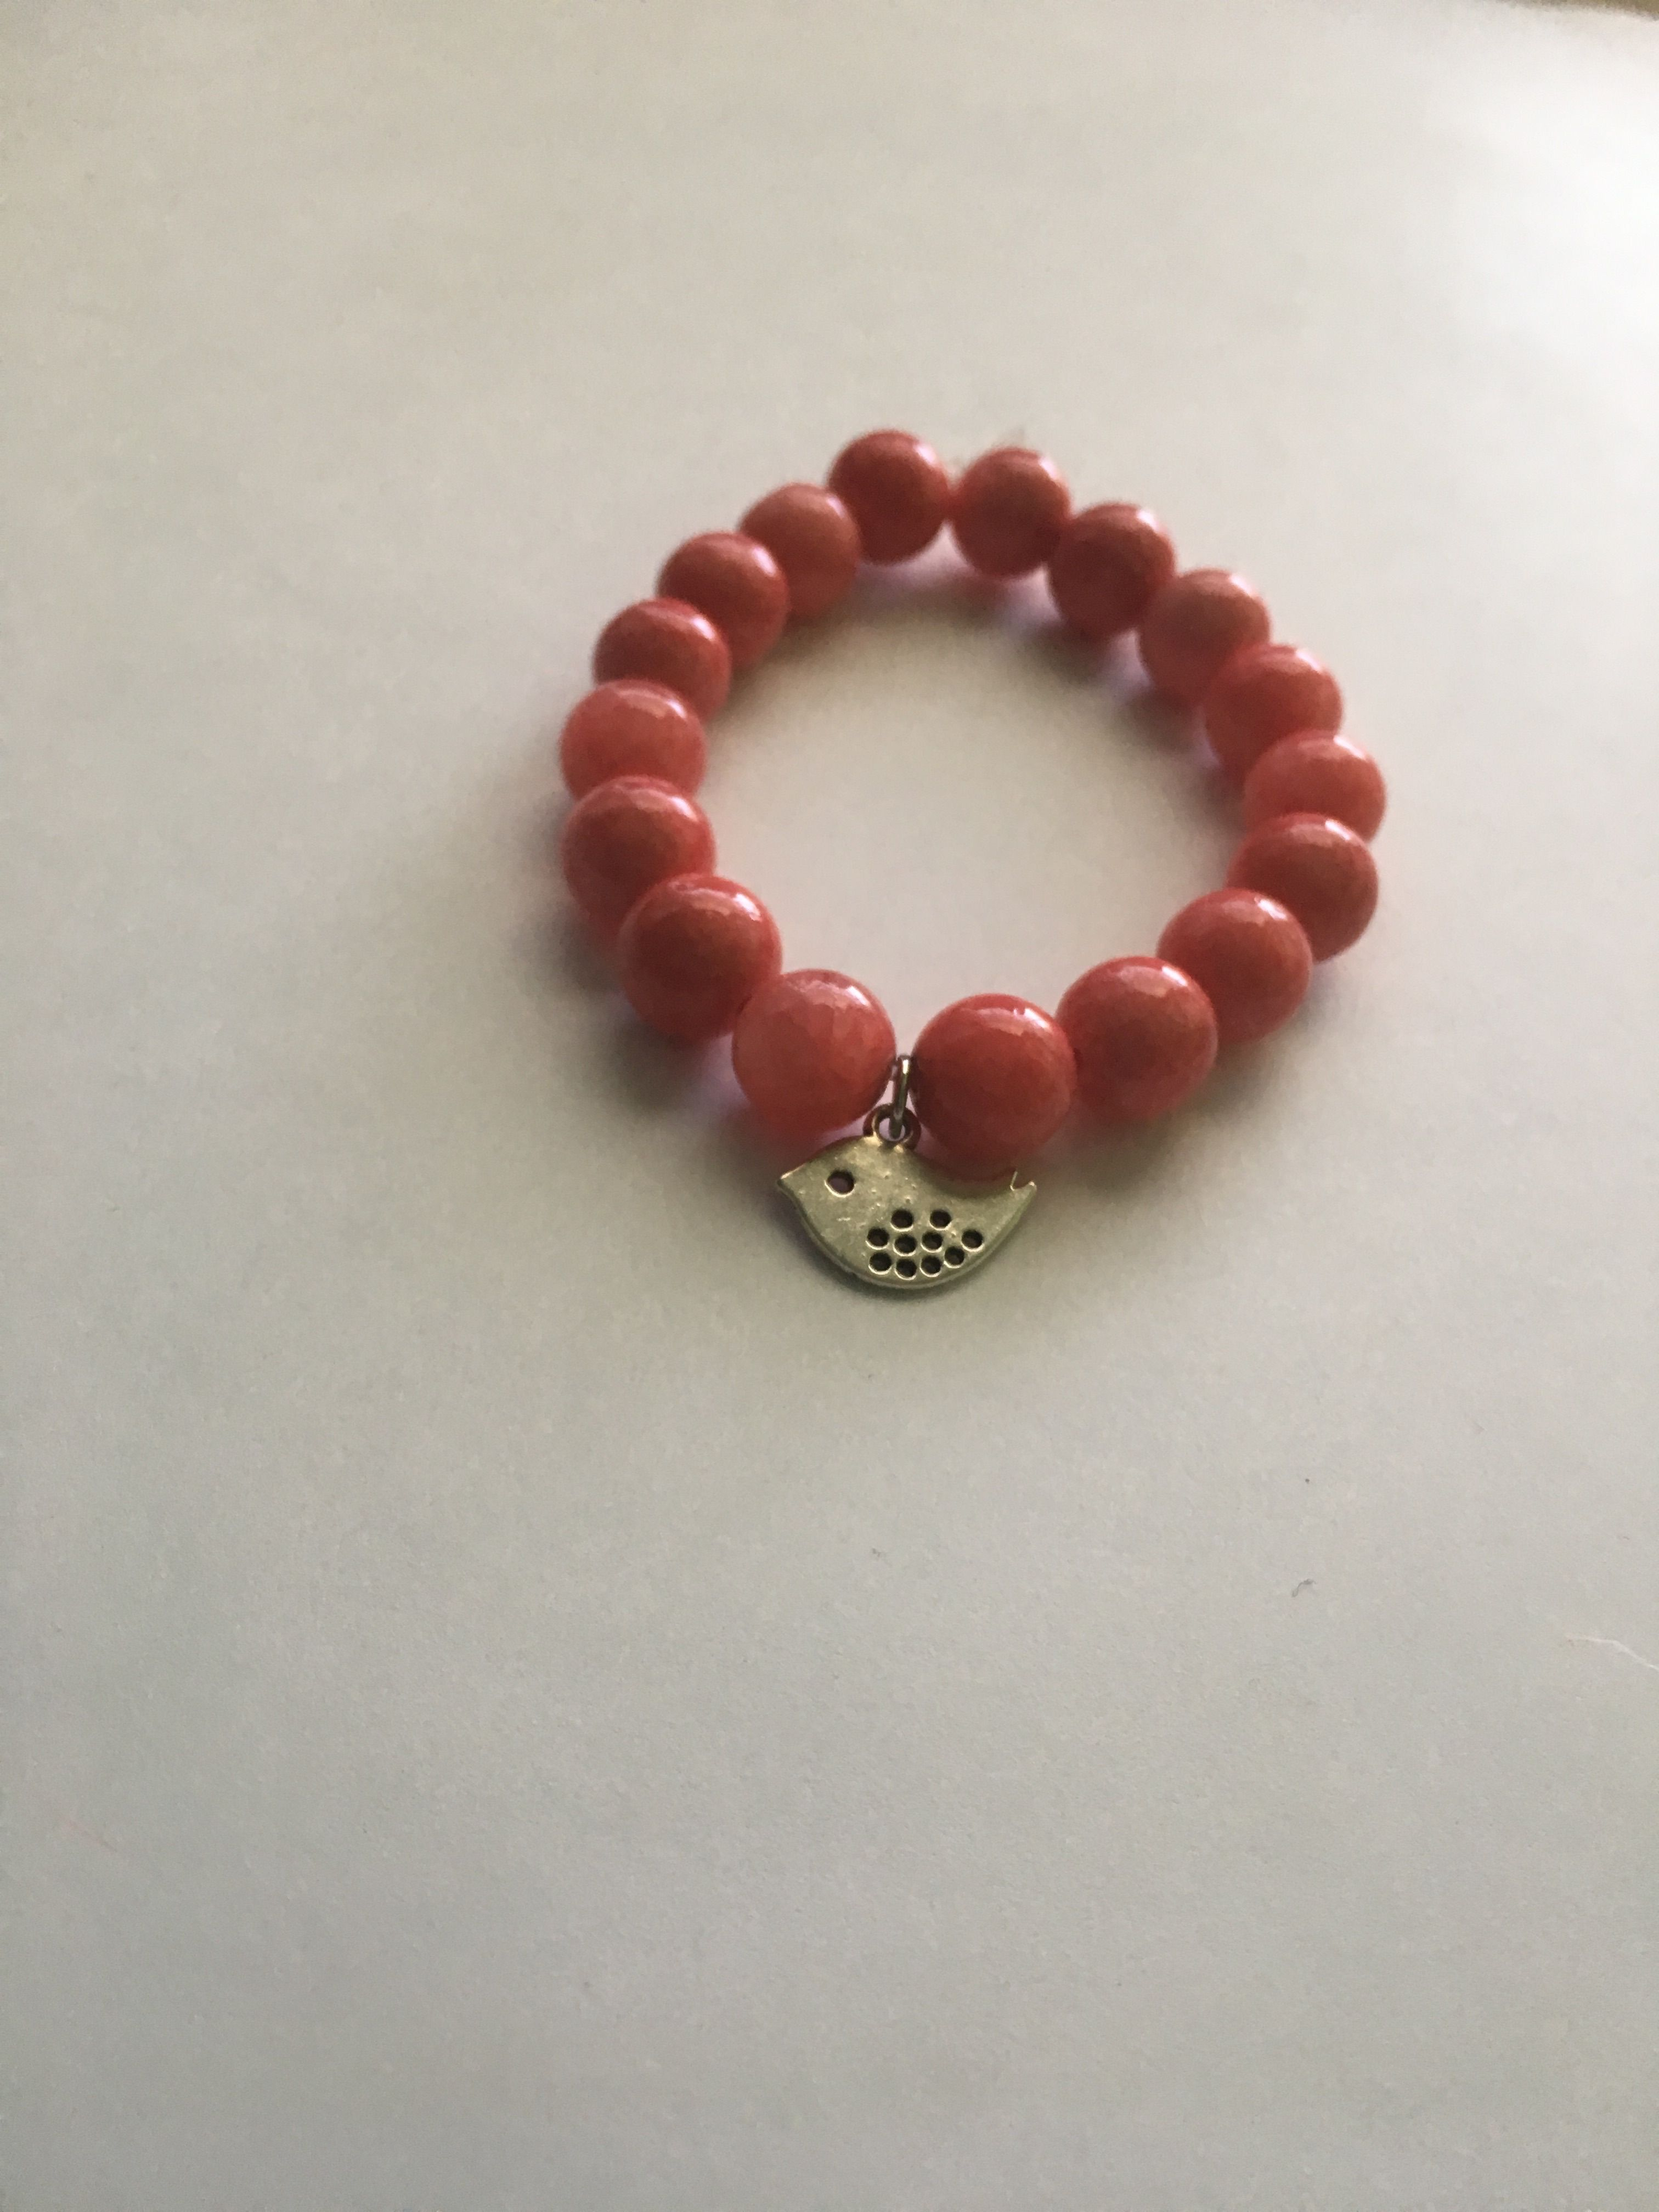 Pink Coral 10mm Beads with Bird Charm